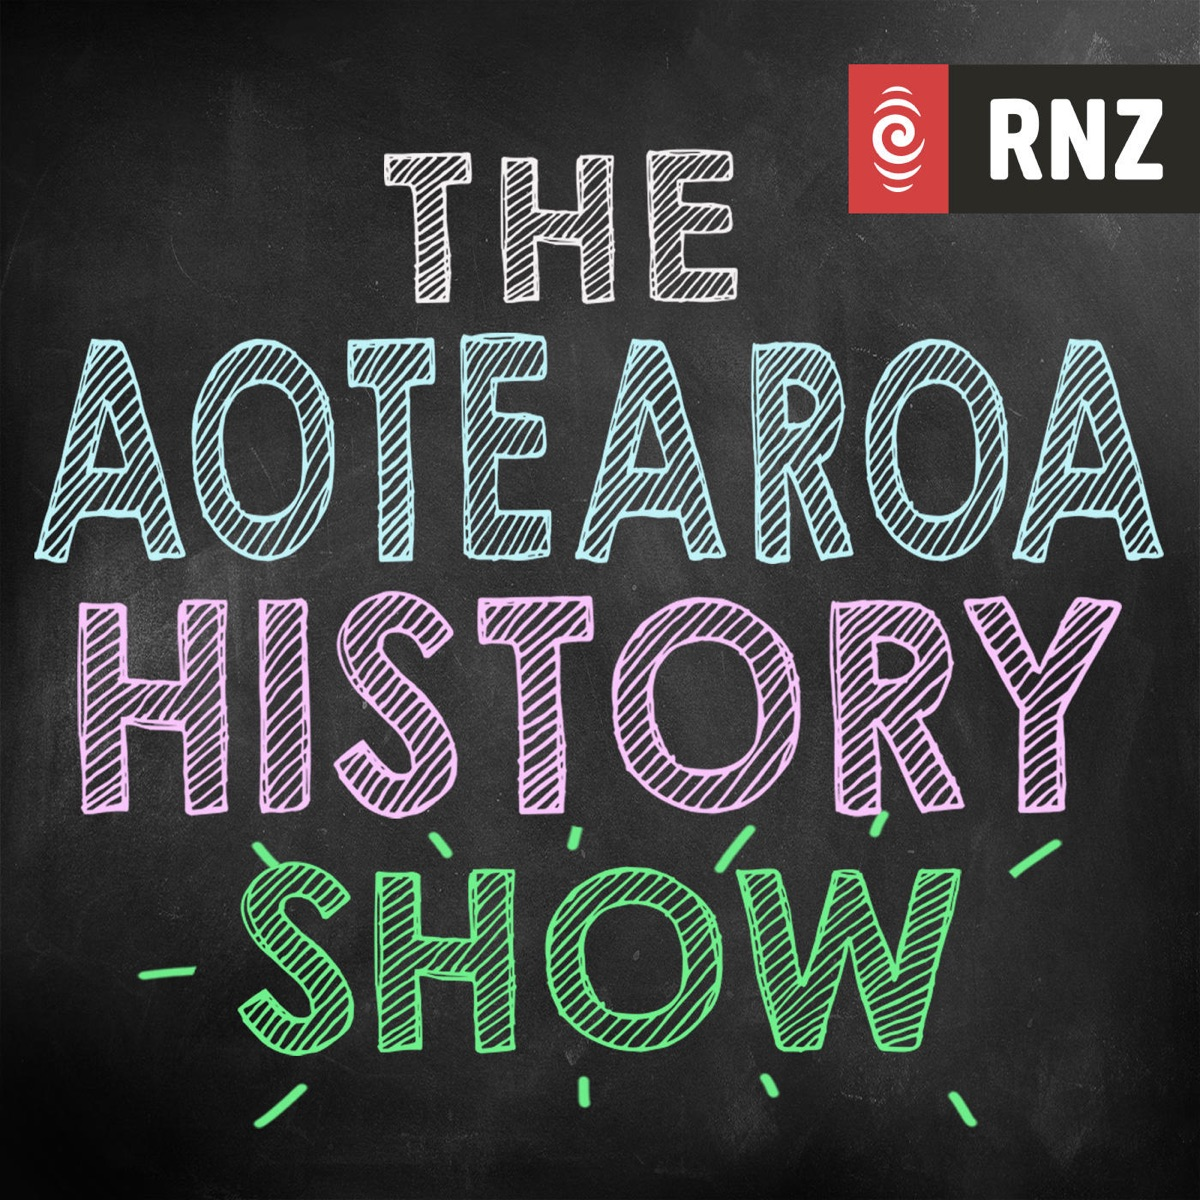 6: New Zealand Wars (Part 2)